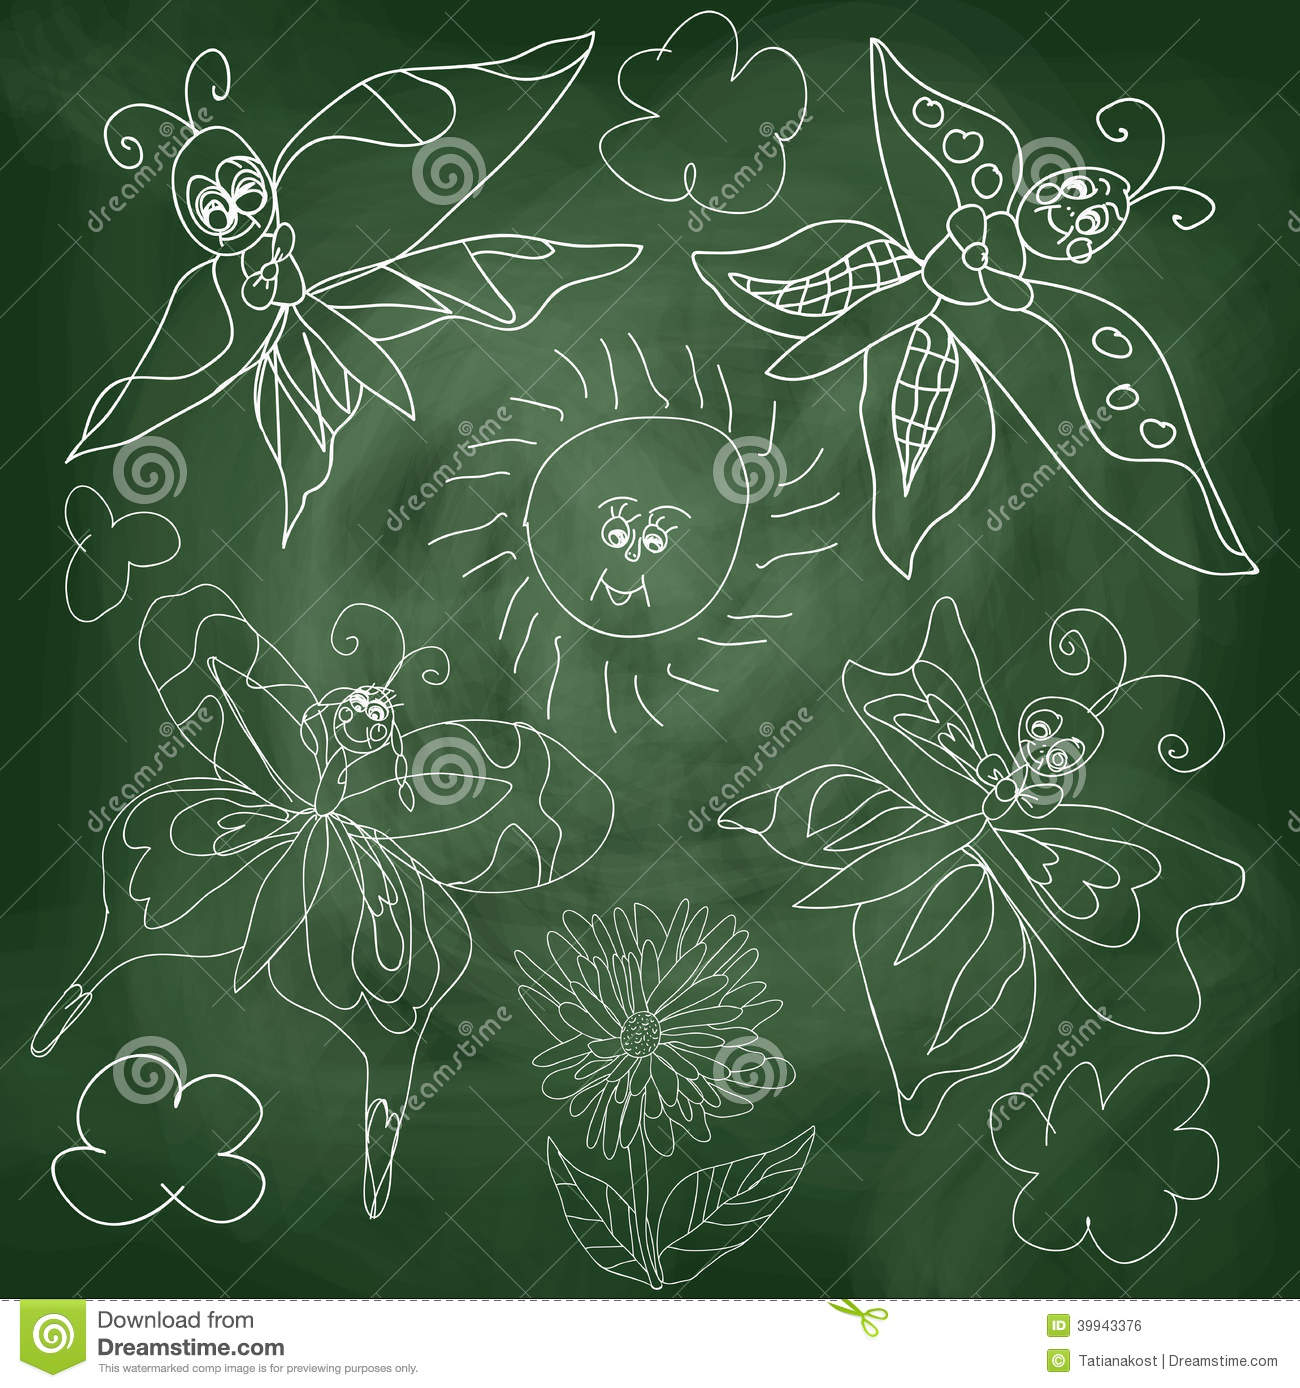 ... Outline different Butterfly,sun,clouds and flowers.Stylized drawing